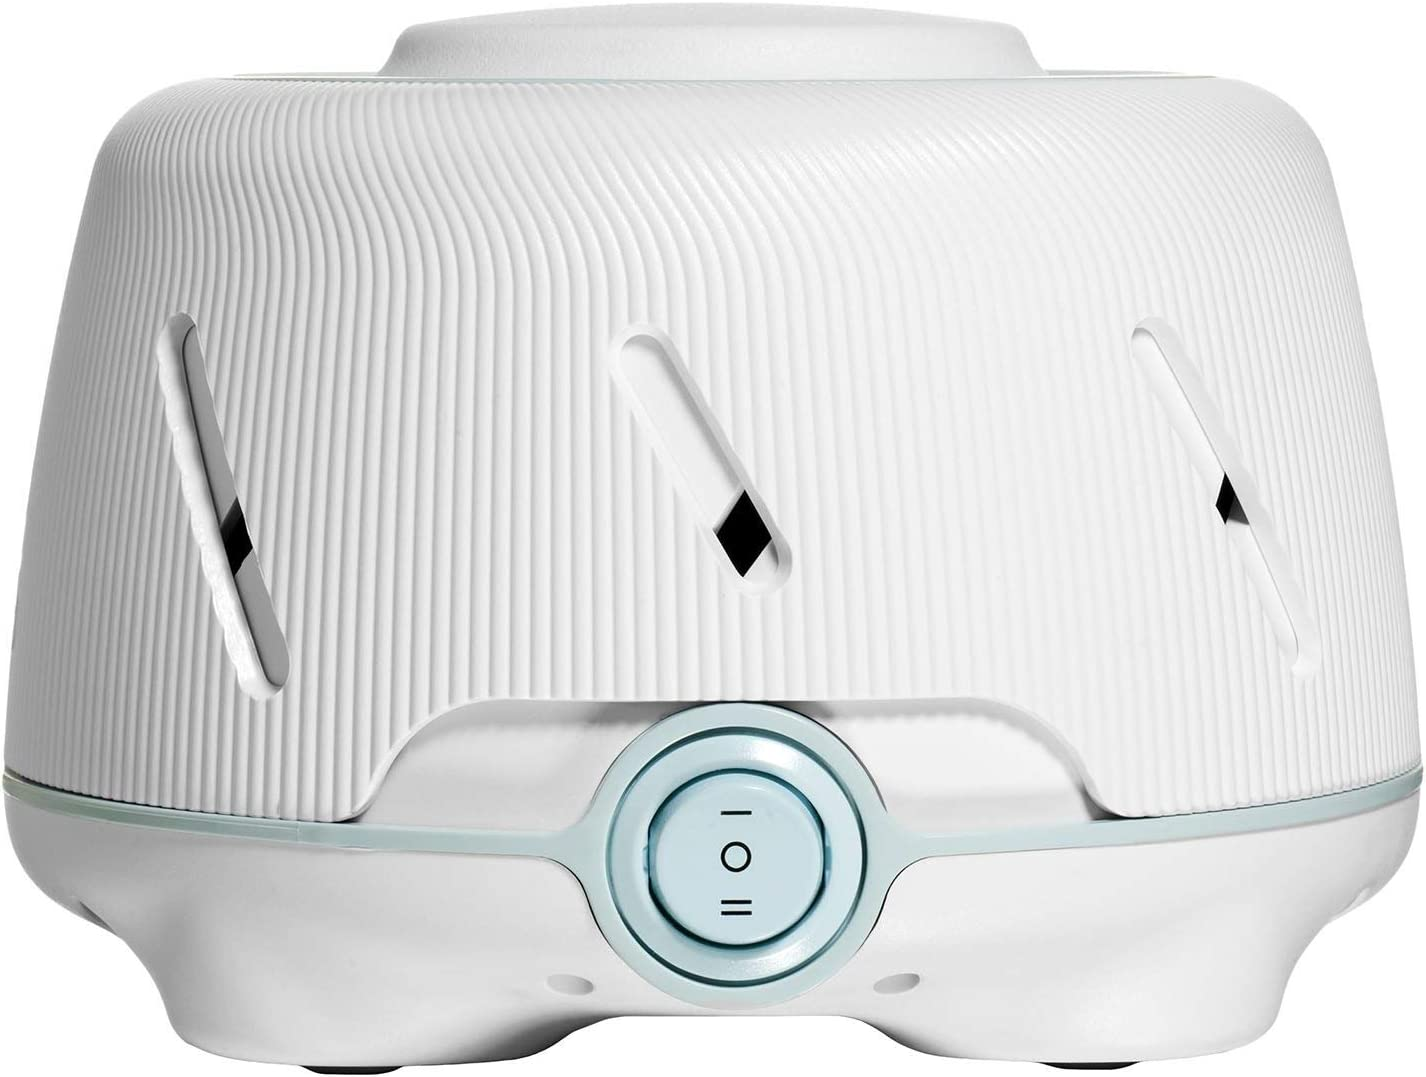 Yogasleep Dohm (White/Blue)   The Original White Noise Machine   Soothing Natural Sound from a Real Fan   Noise Cancelling   Sleep Therapy, Office Privacy, Travel   For Adults & Baby   101 Night Trial